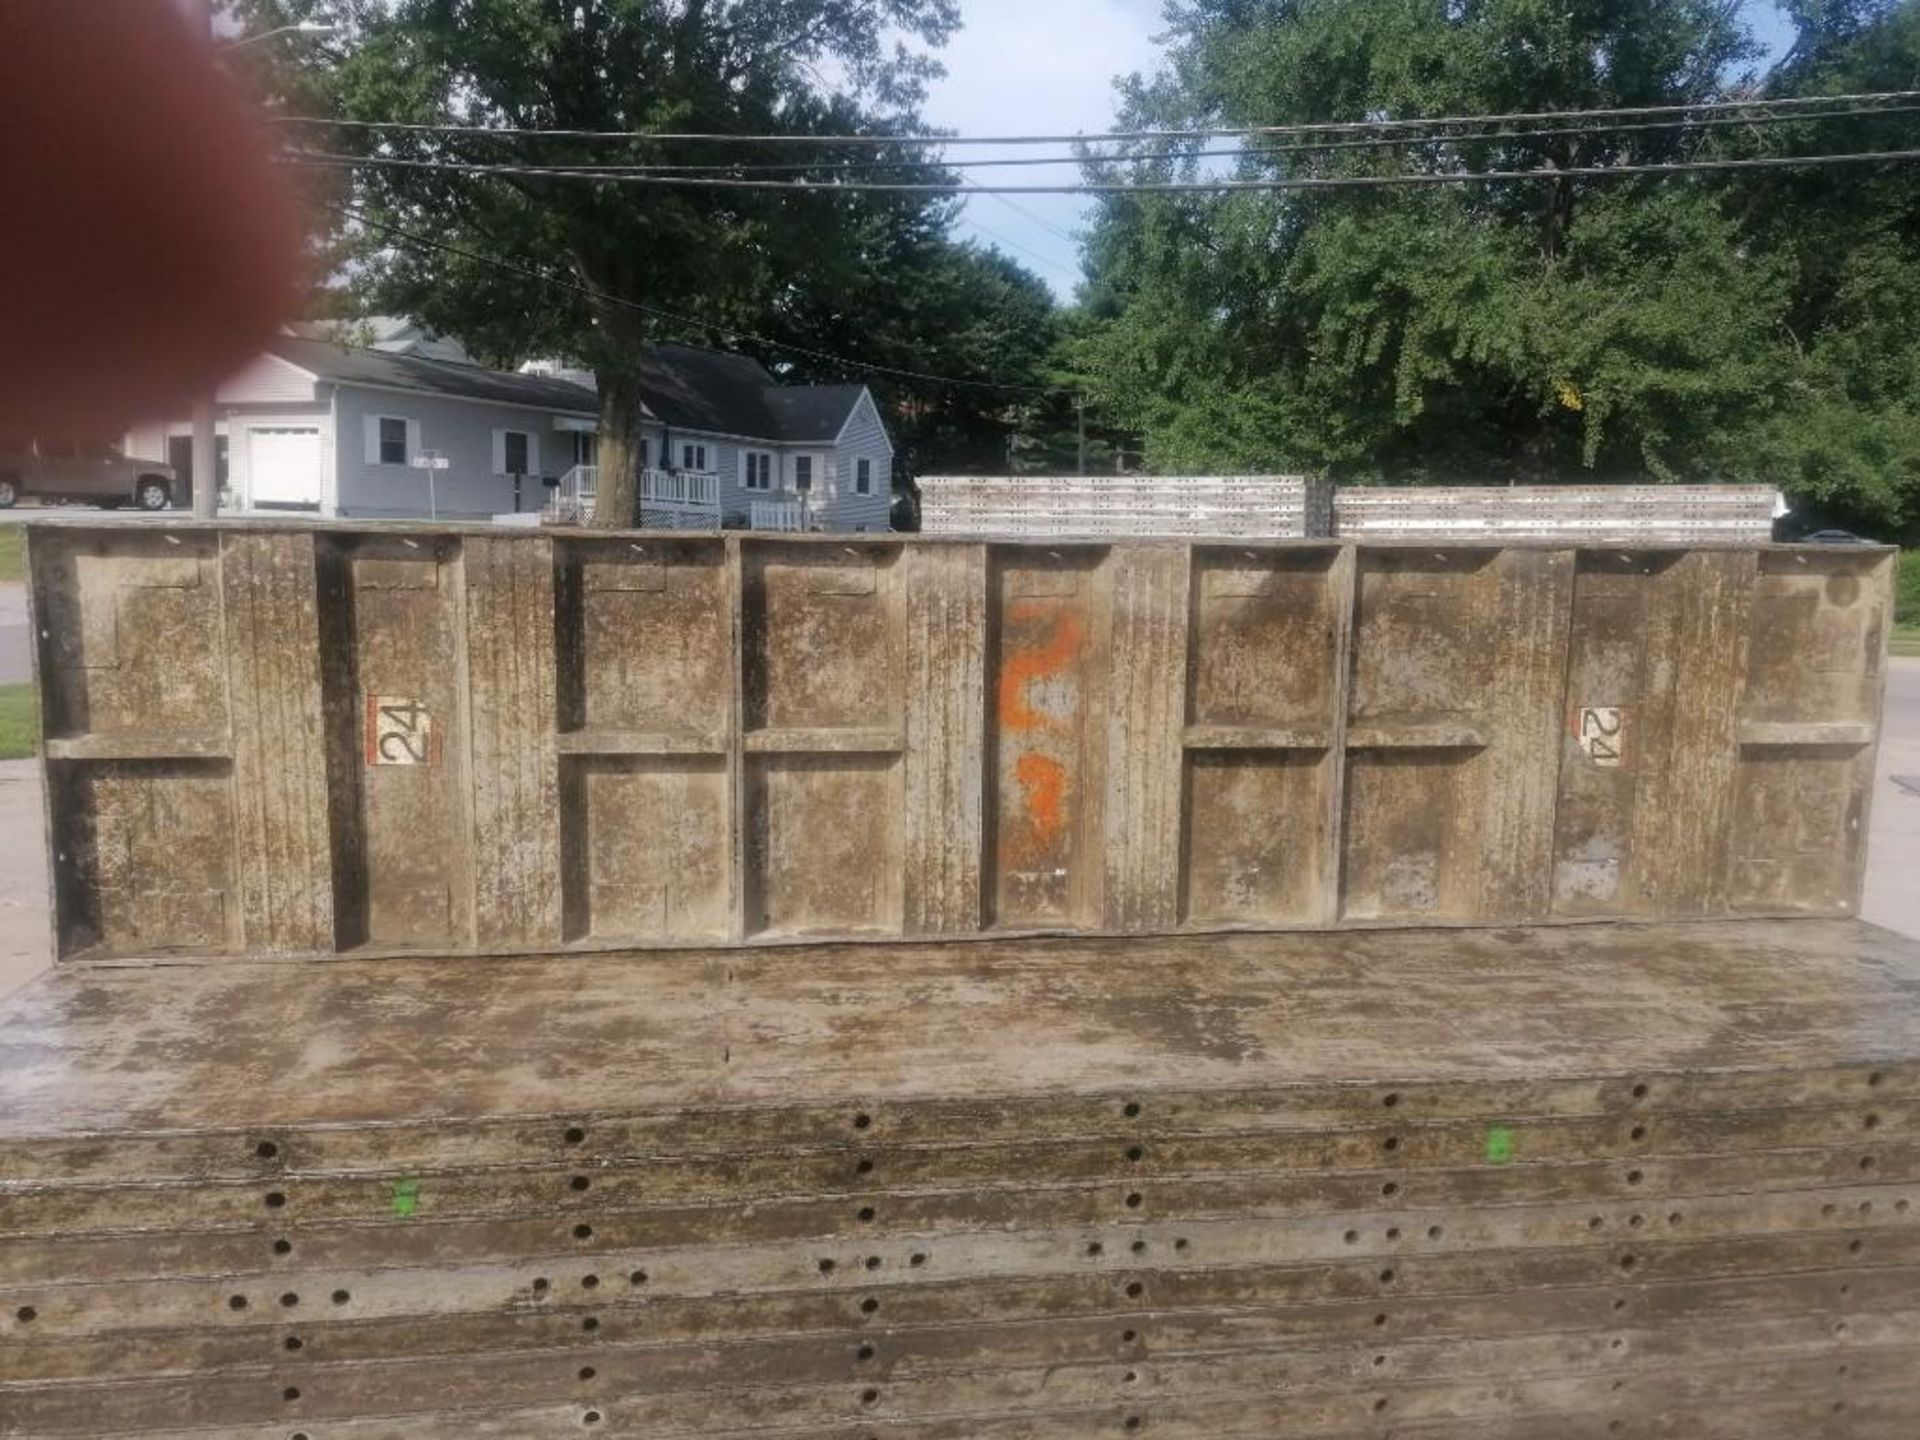 Lot 145 - (30) 2' x 9' Wall-Ties Aluminum Concrete Forms, Laydowns, Smooth 6-12 Hole Pattern. Located at 301 E